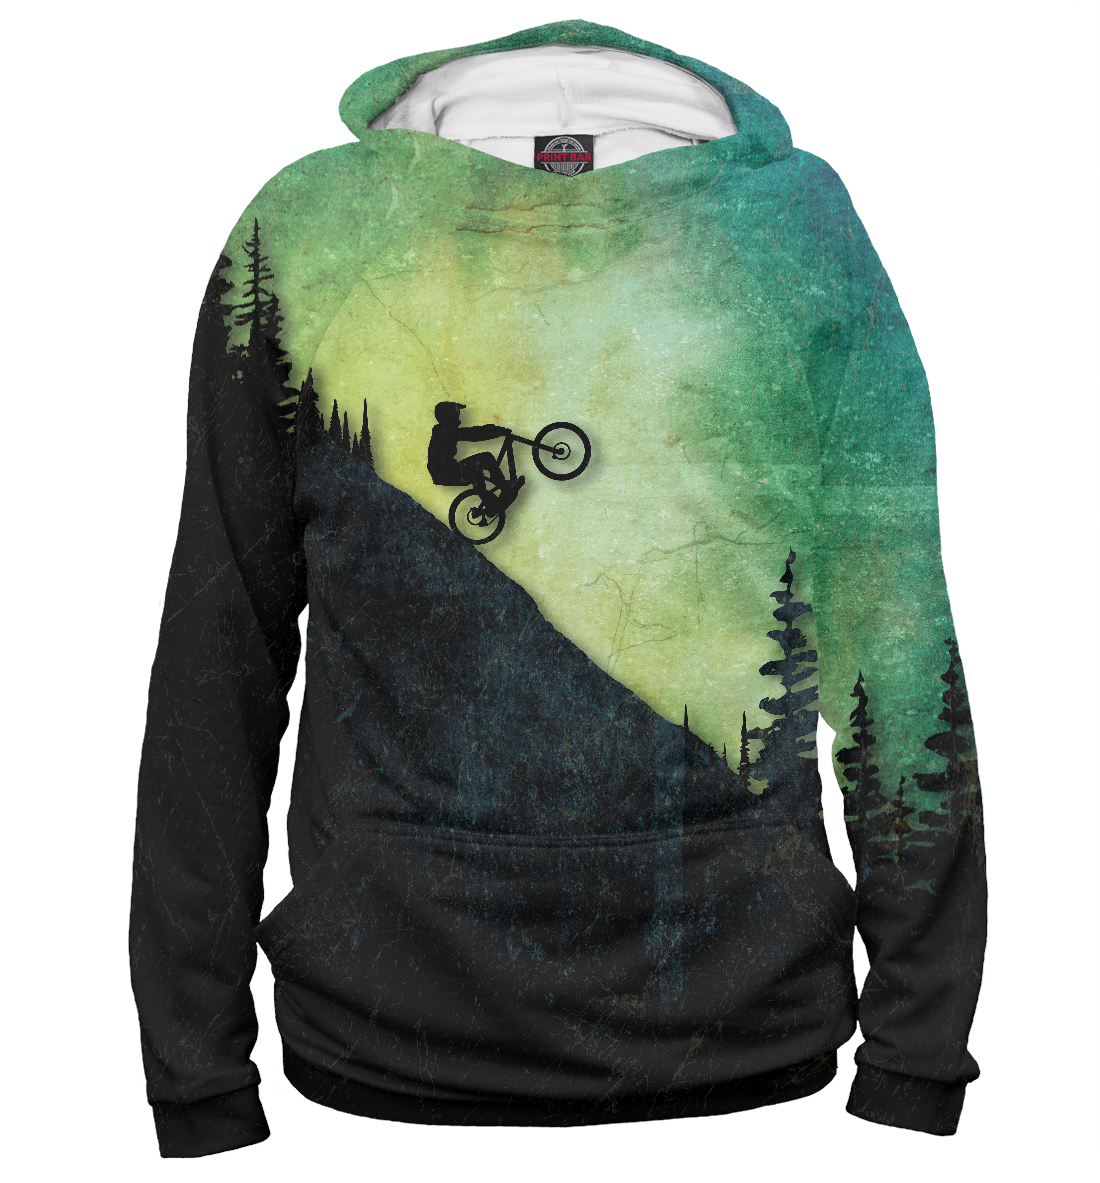 Downhill colors